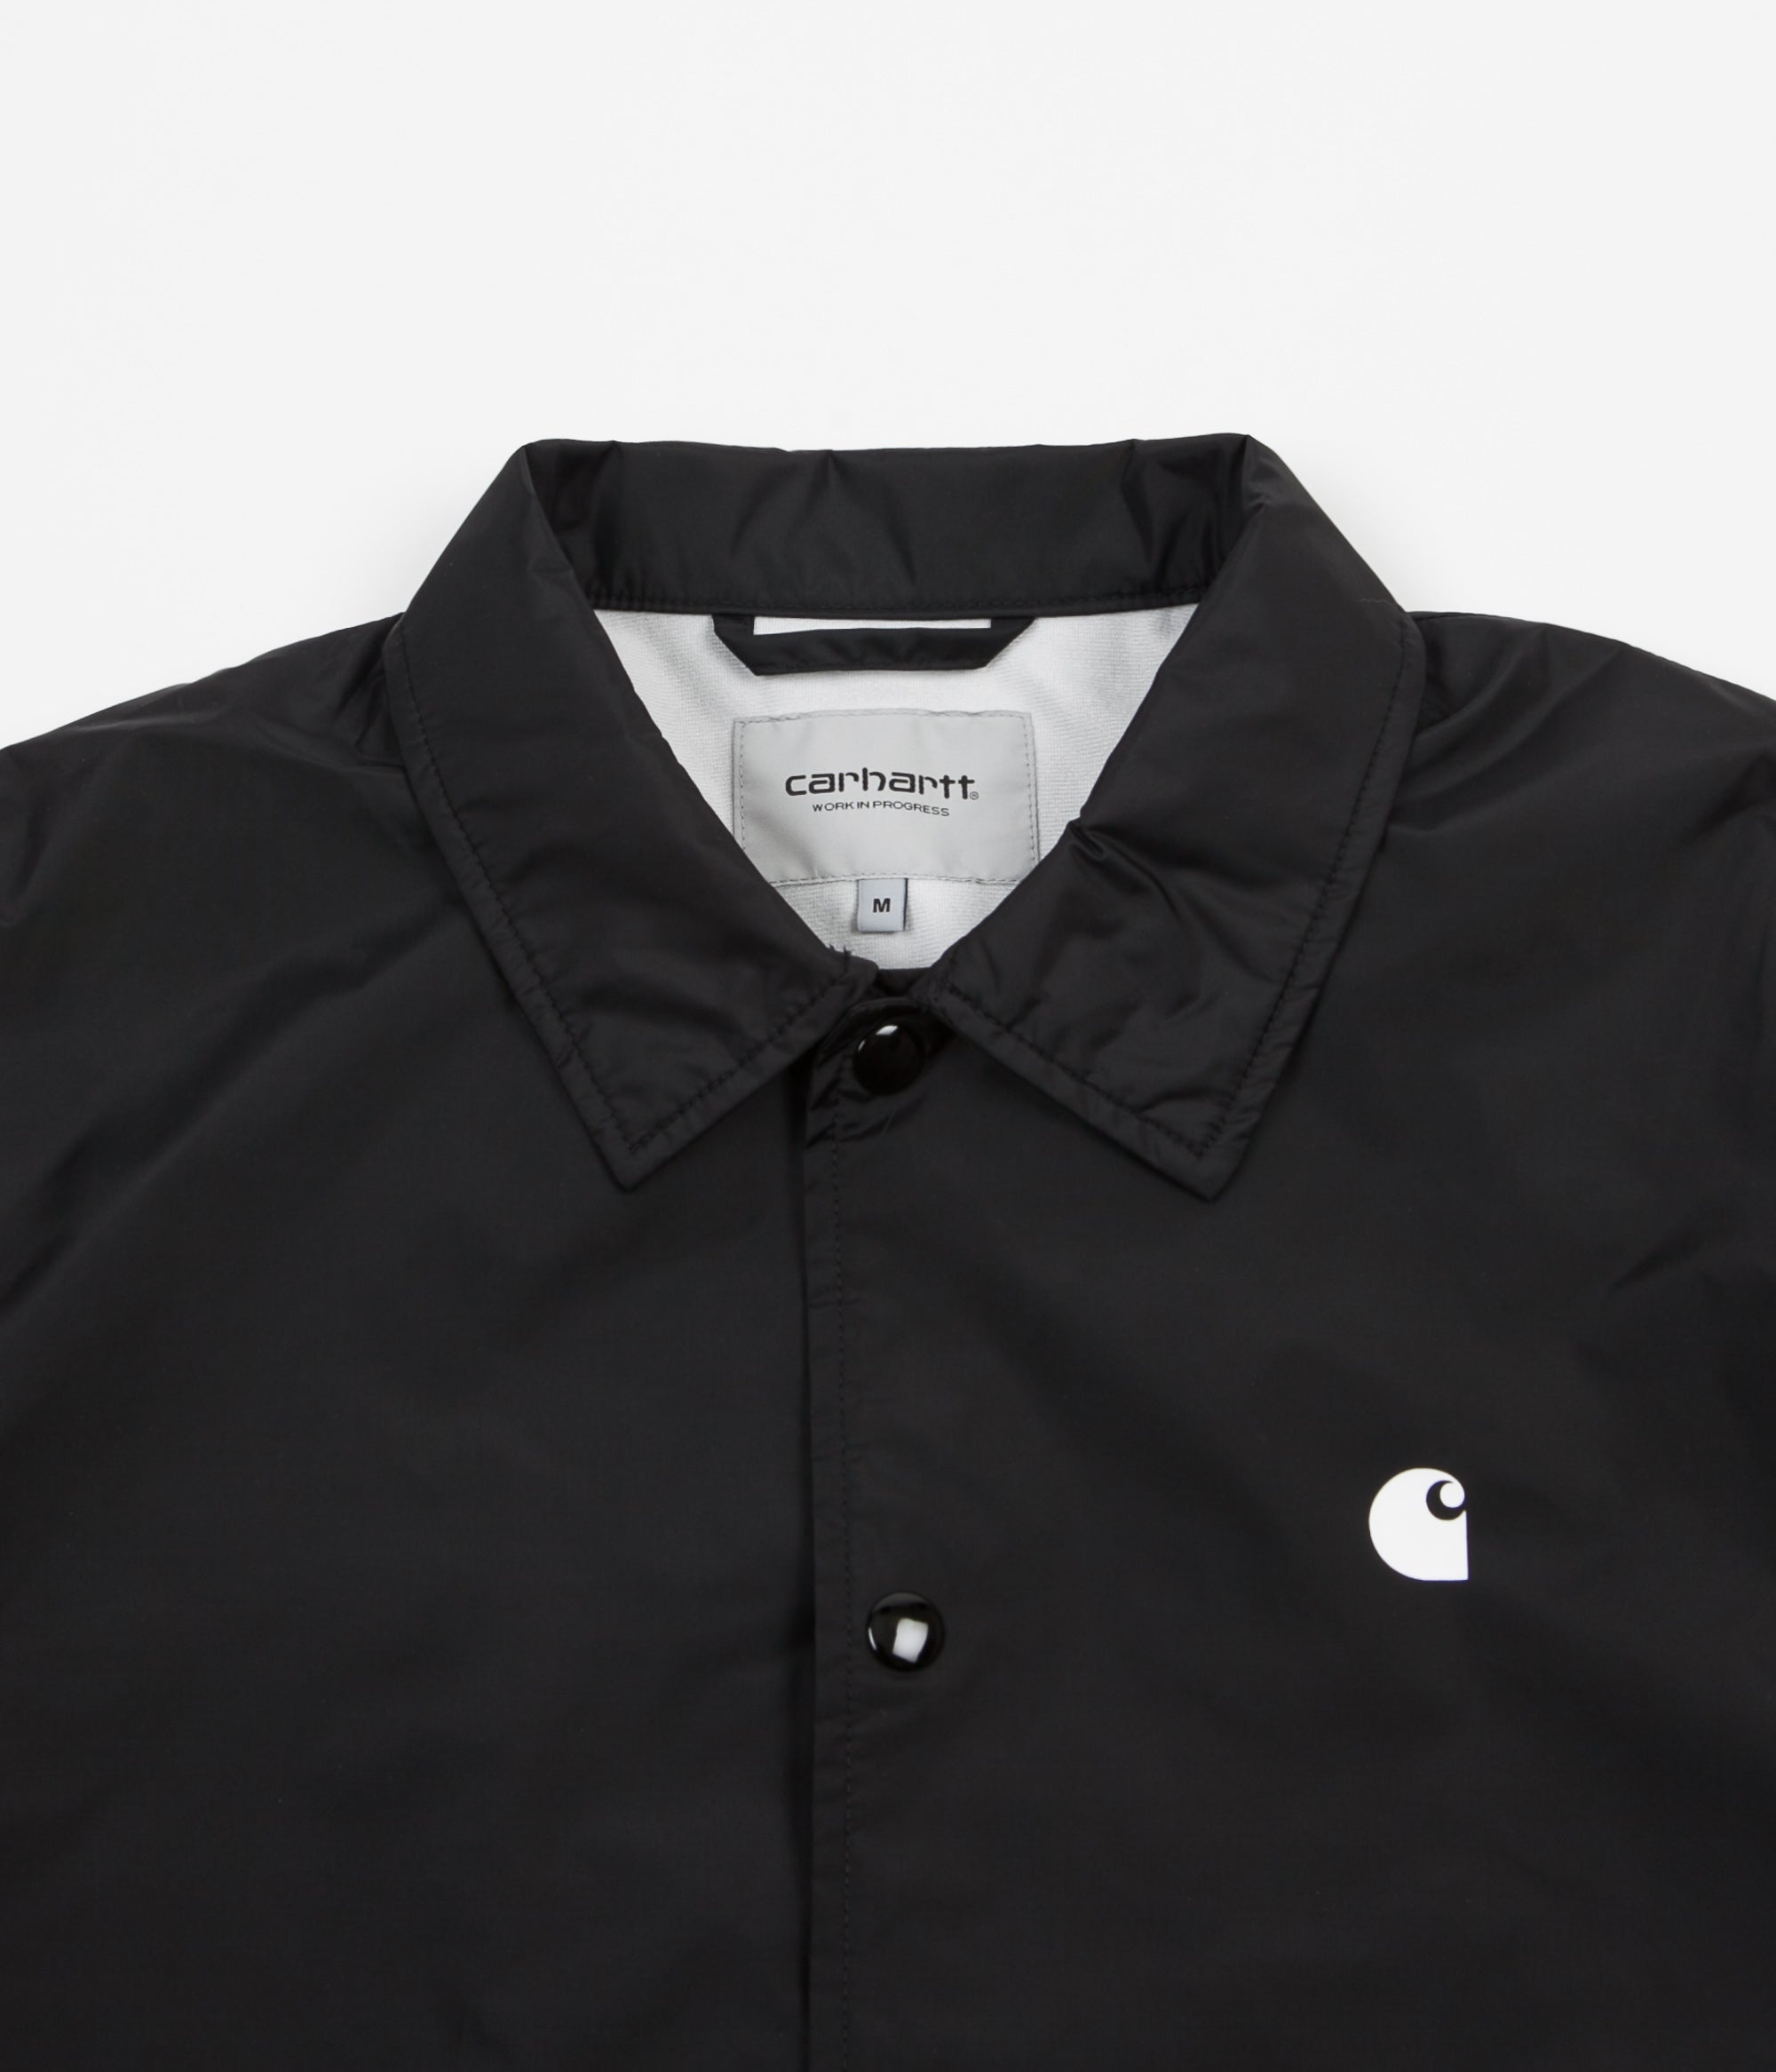 Carhartt WIP Coach Jacket - Black / White